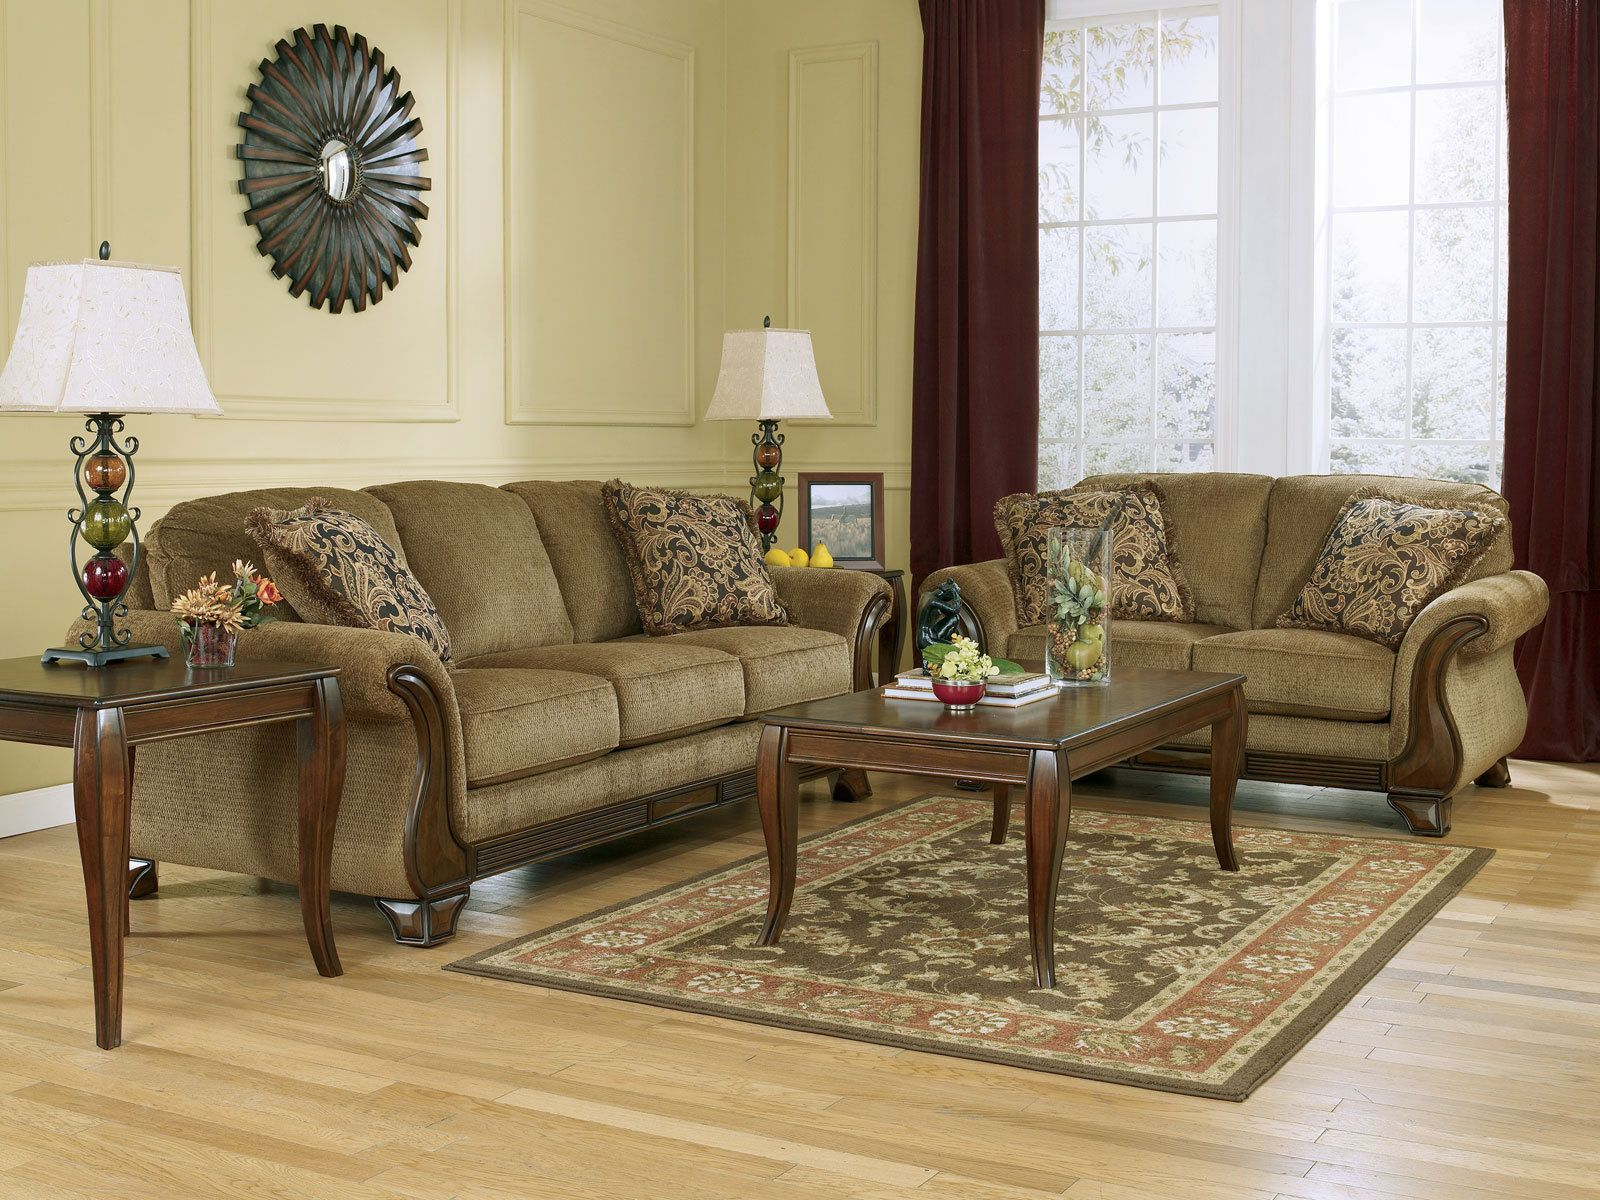 Santiago traditional brown fabric wood trim sofa couch set living room furniture ebay